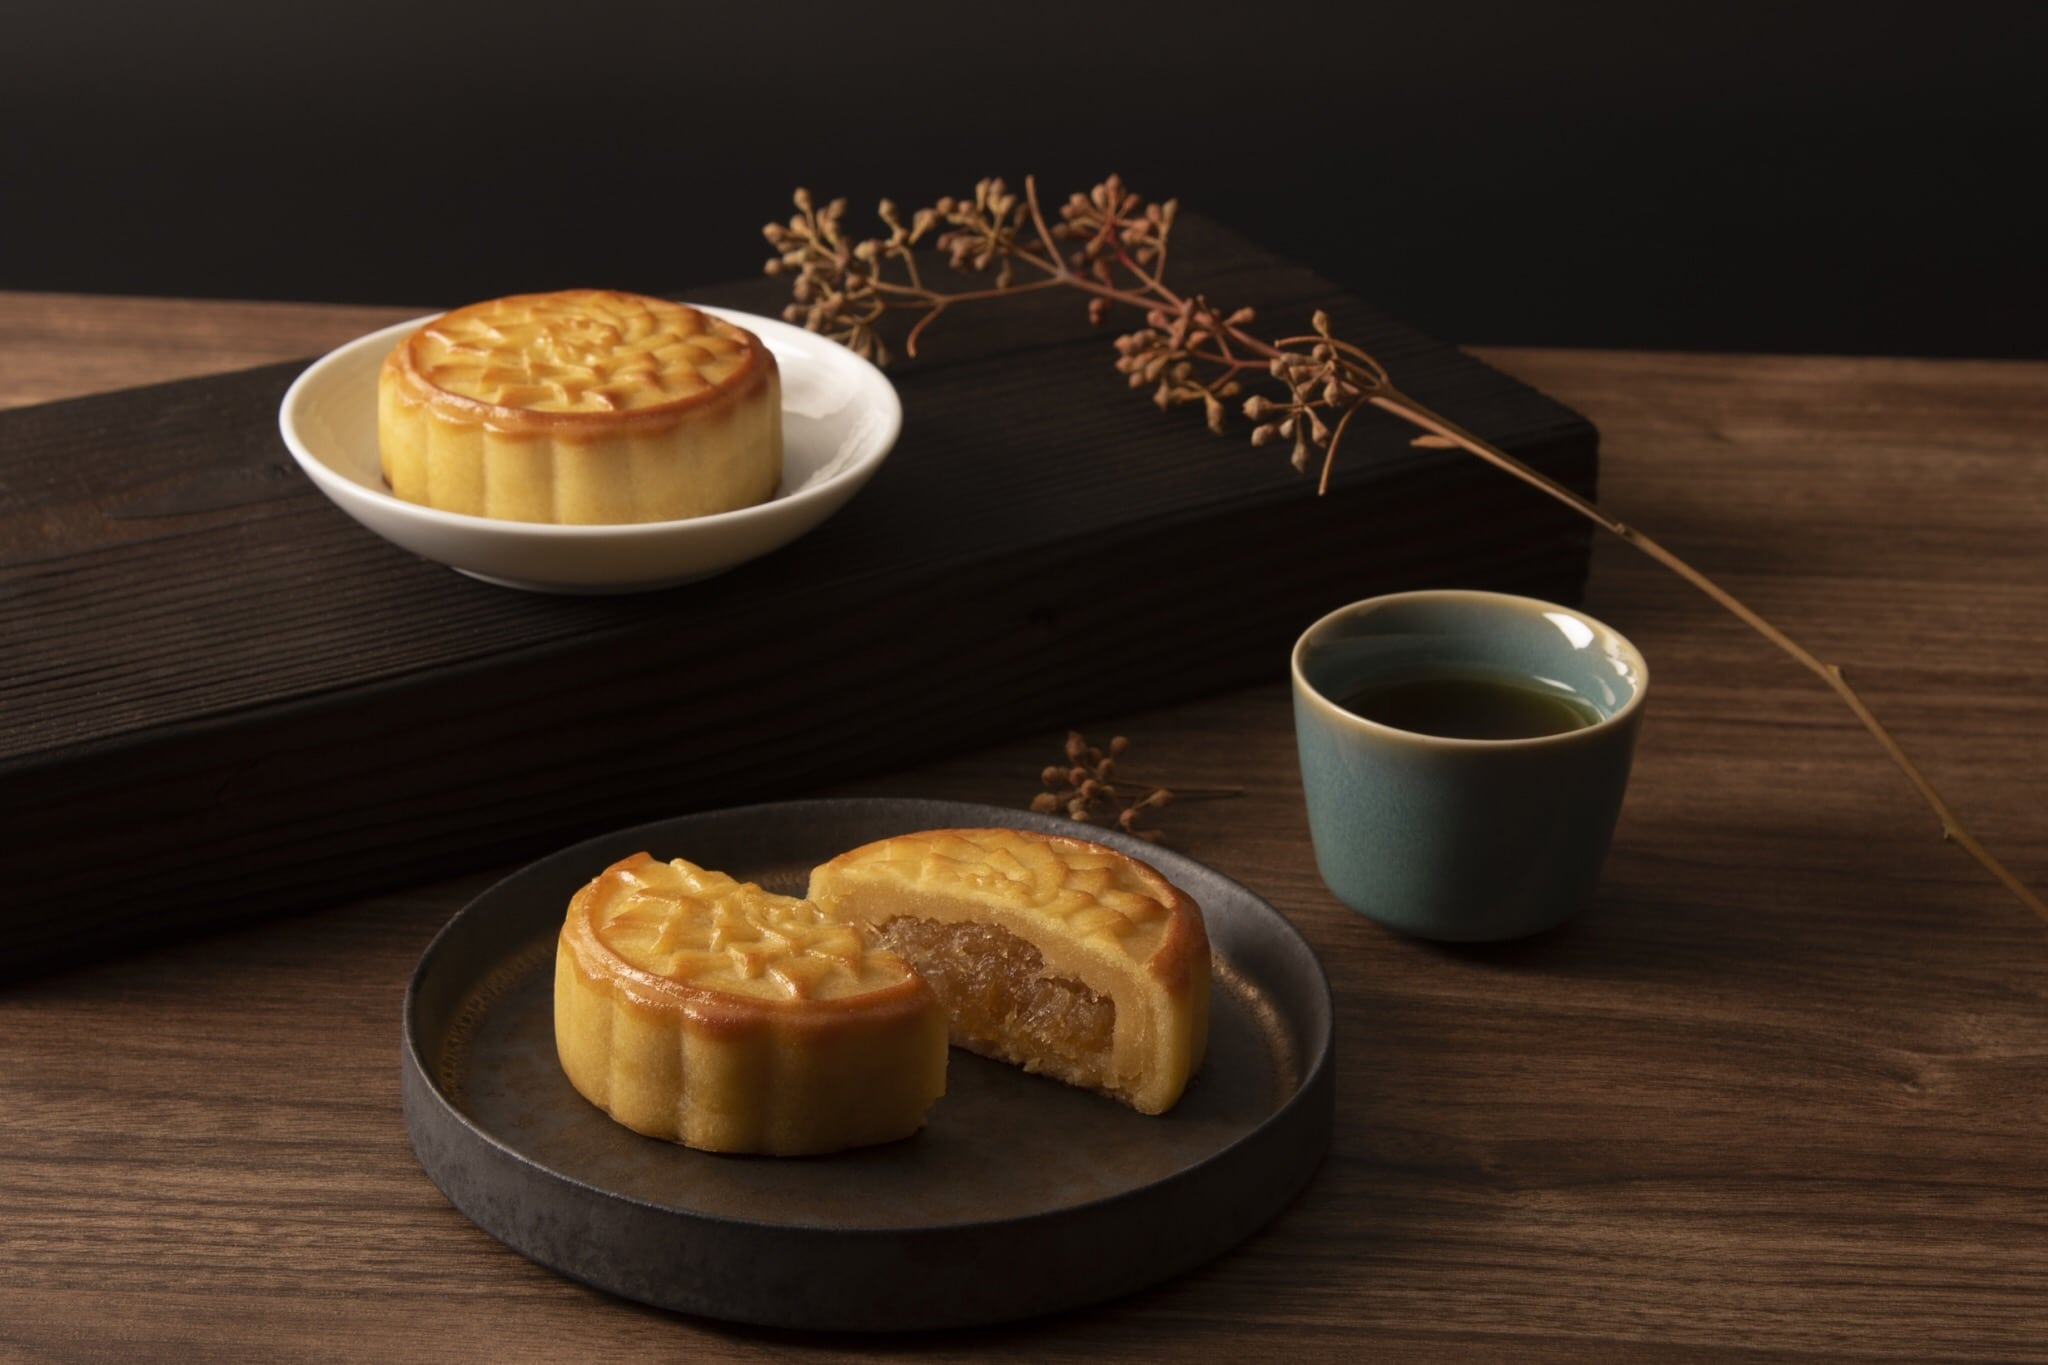 Over the moon with SunnyHills' Pineapple Custard Mooncake